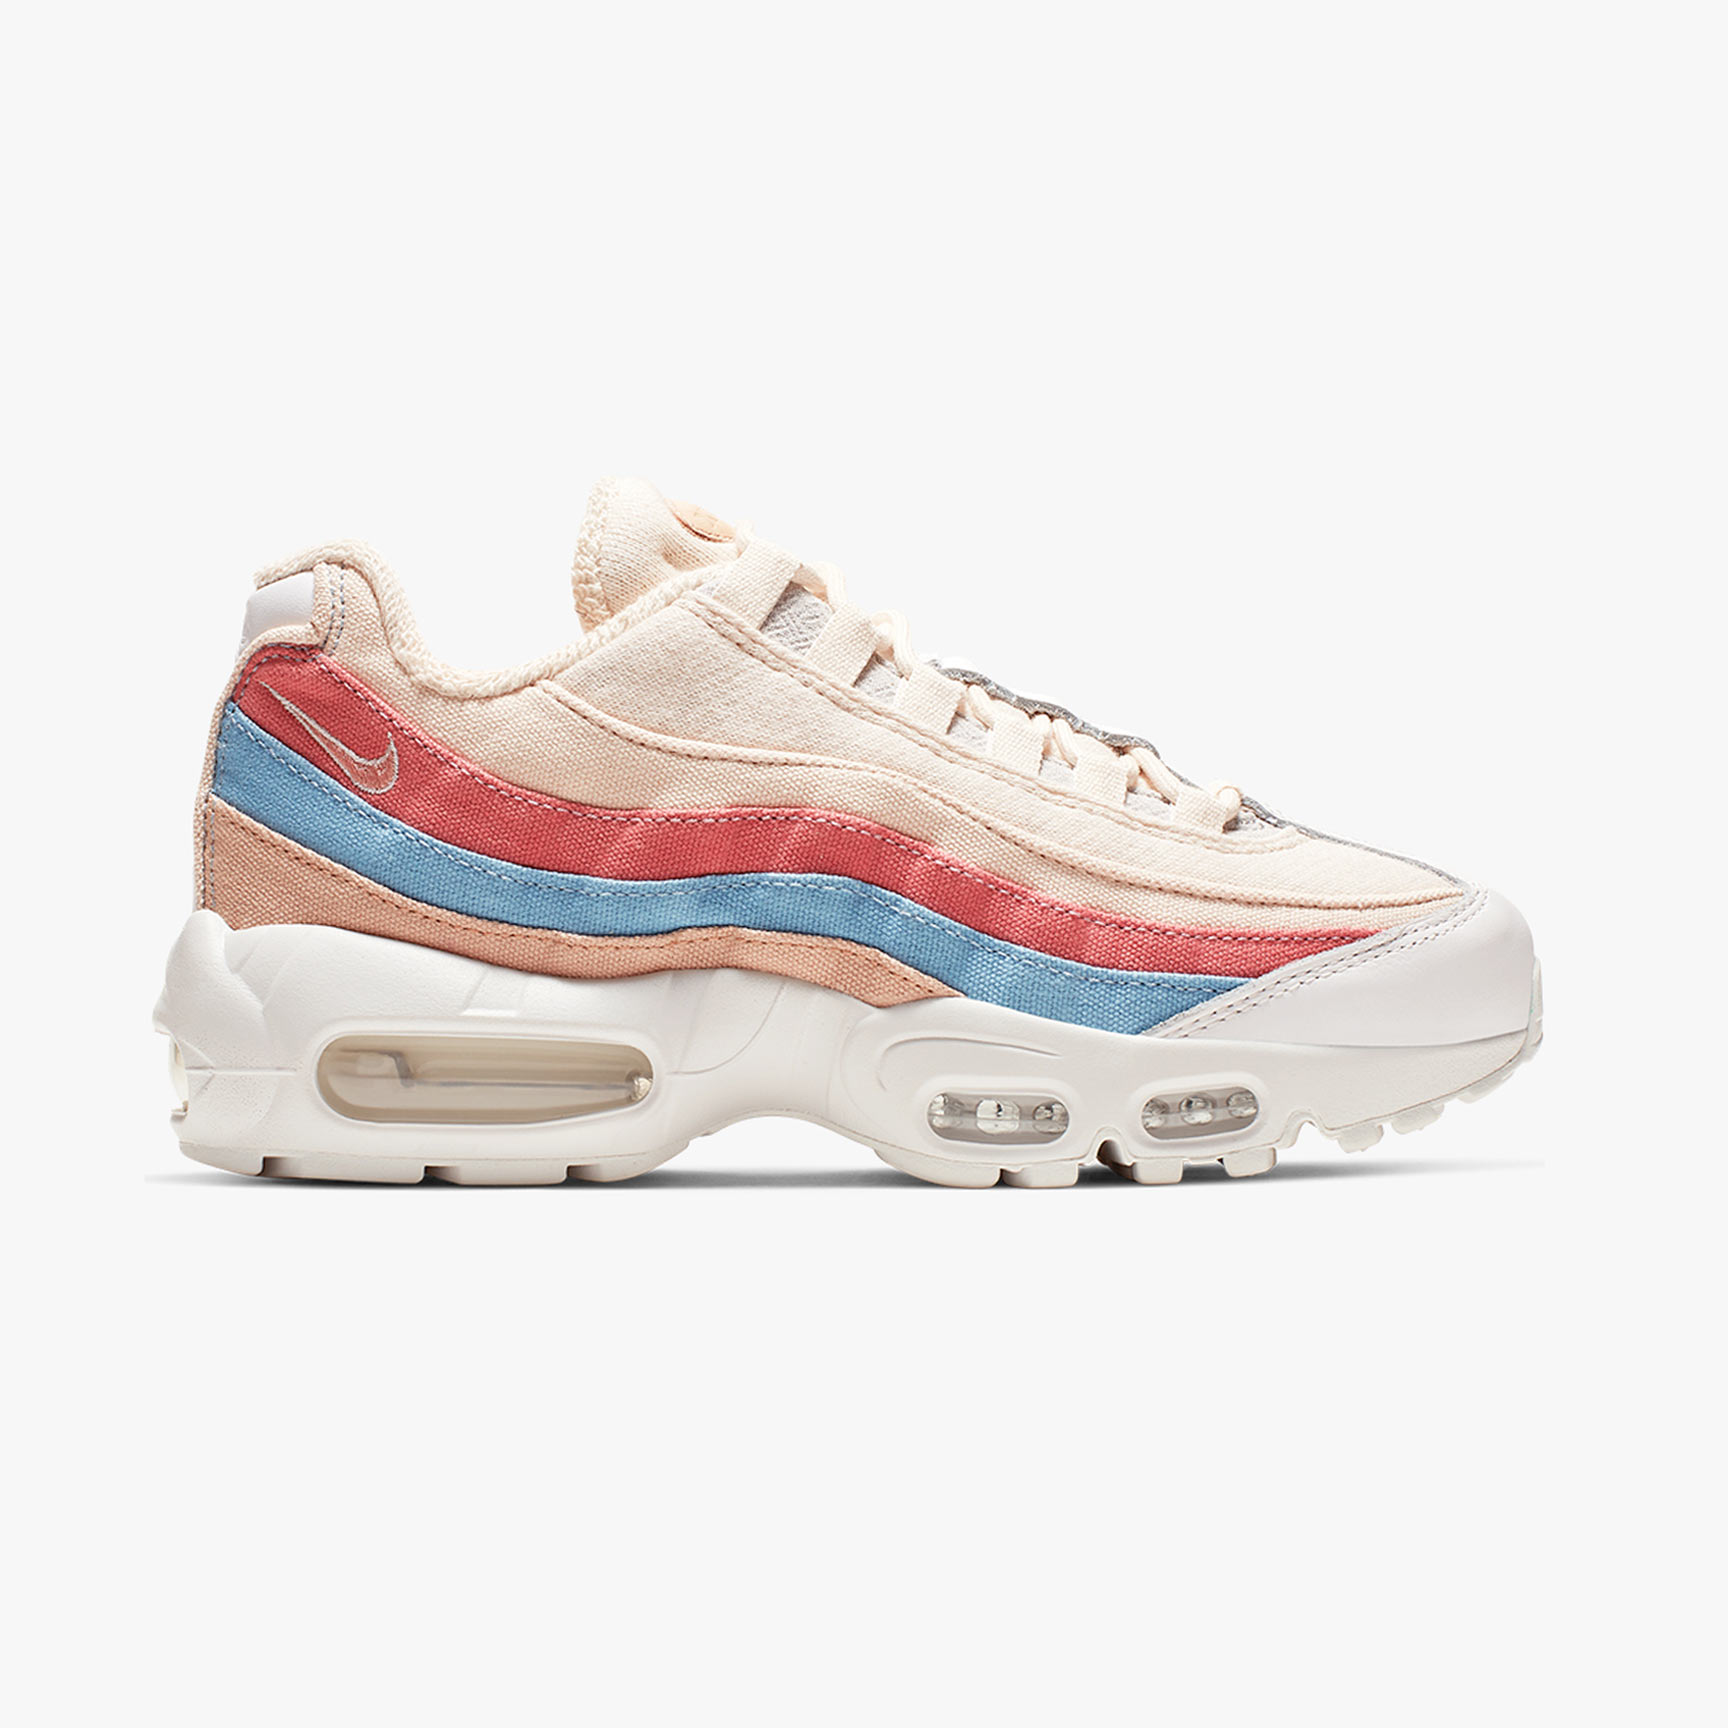 Nike WMNS Air Max 95 'Plant Color Collection'